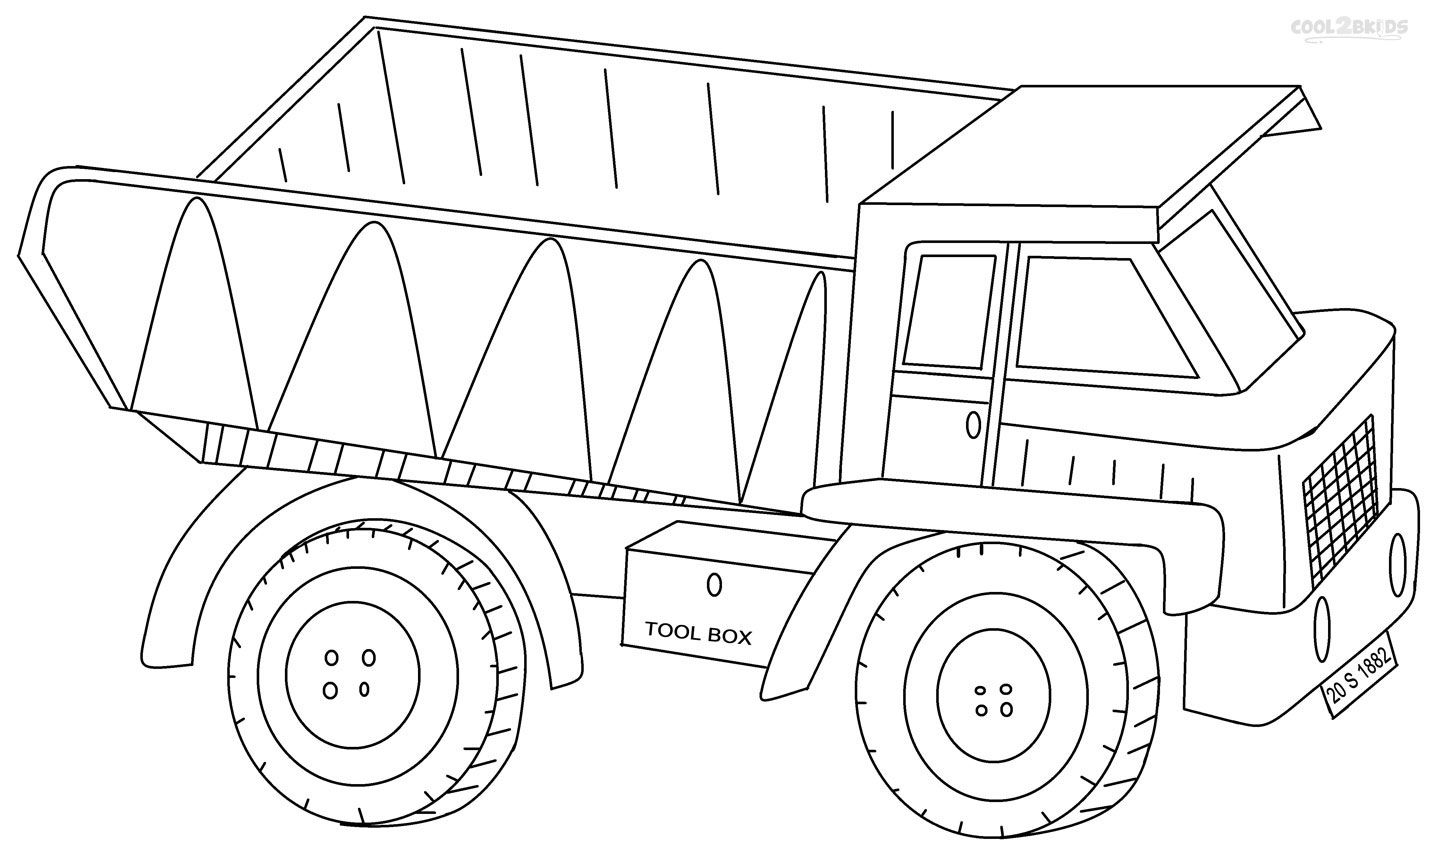 Coloring pictures of cars truck tractors - Printable Dump Truck Coloring Pages For Kids Cool2bkids